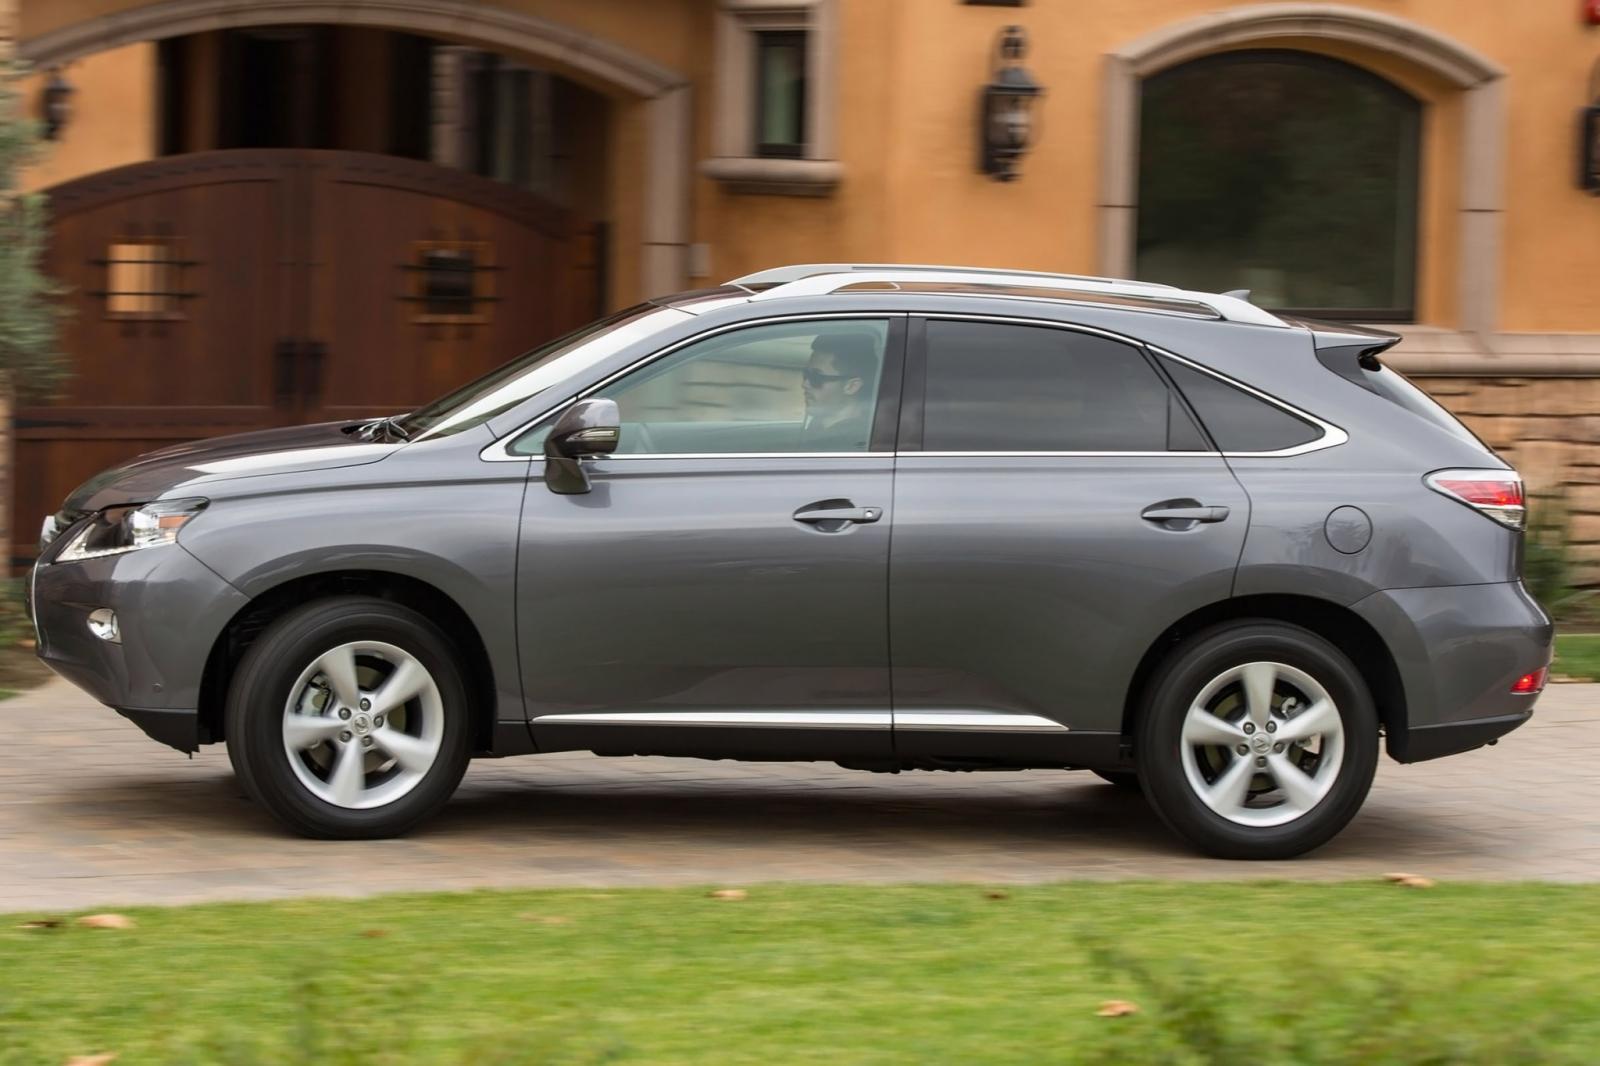 2015 lexus rx 350 information and photos zombiedrive. Black Bedroom Furniture Sets. Home Design Ideas